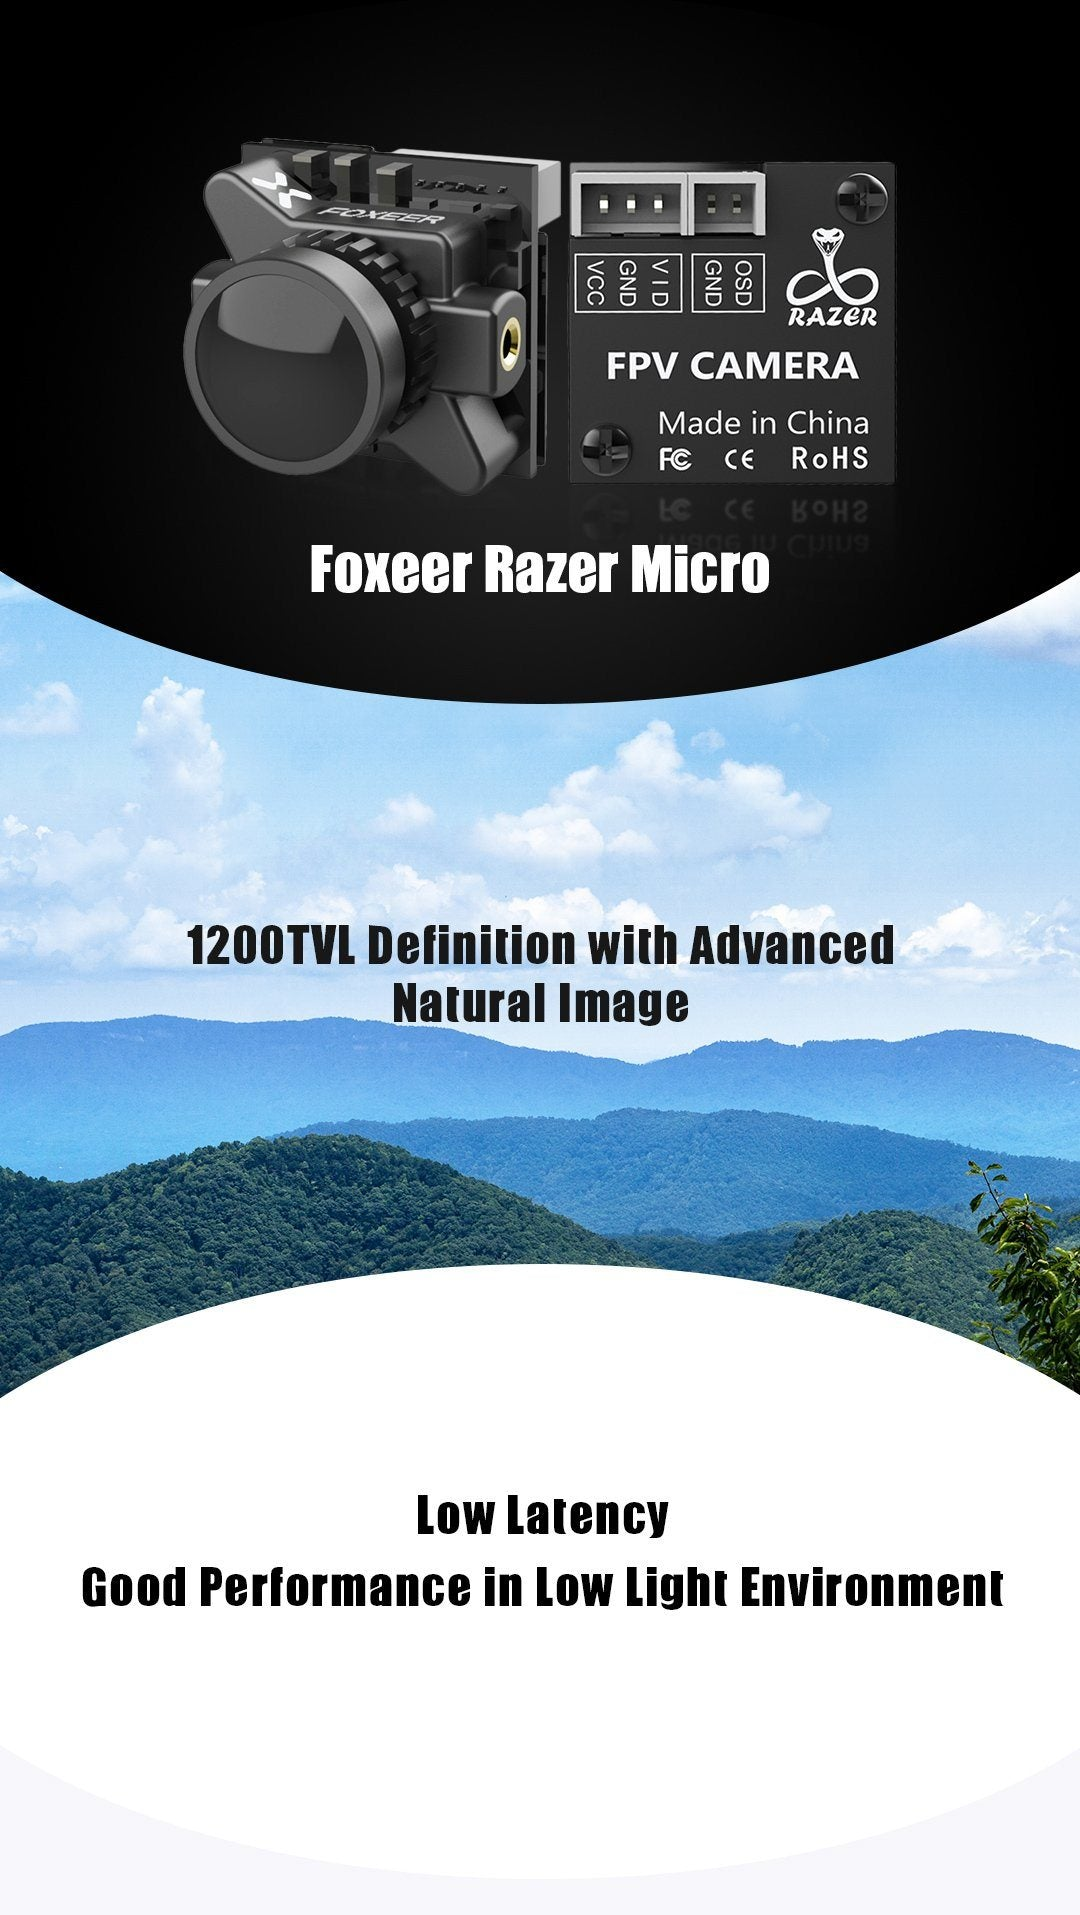 Foxeer Micro Razer 1.8mm Low Latency FPV Camera Foxeer